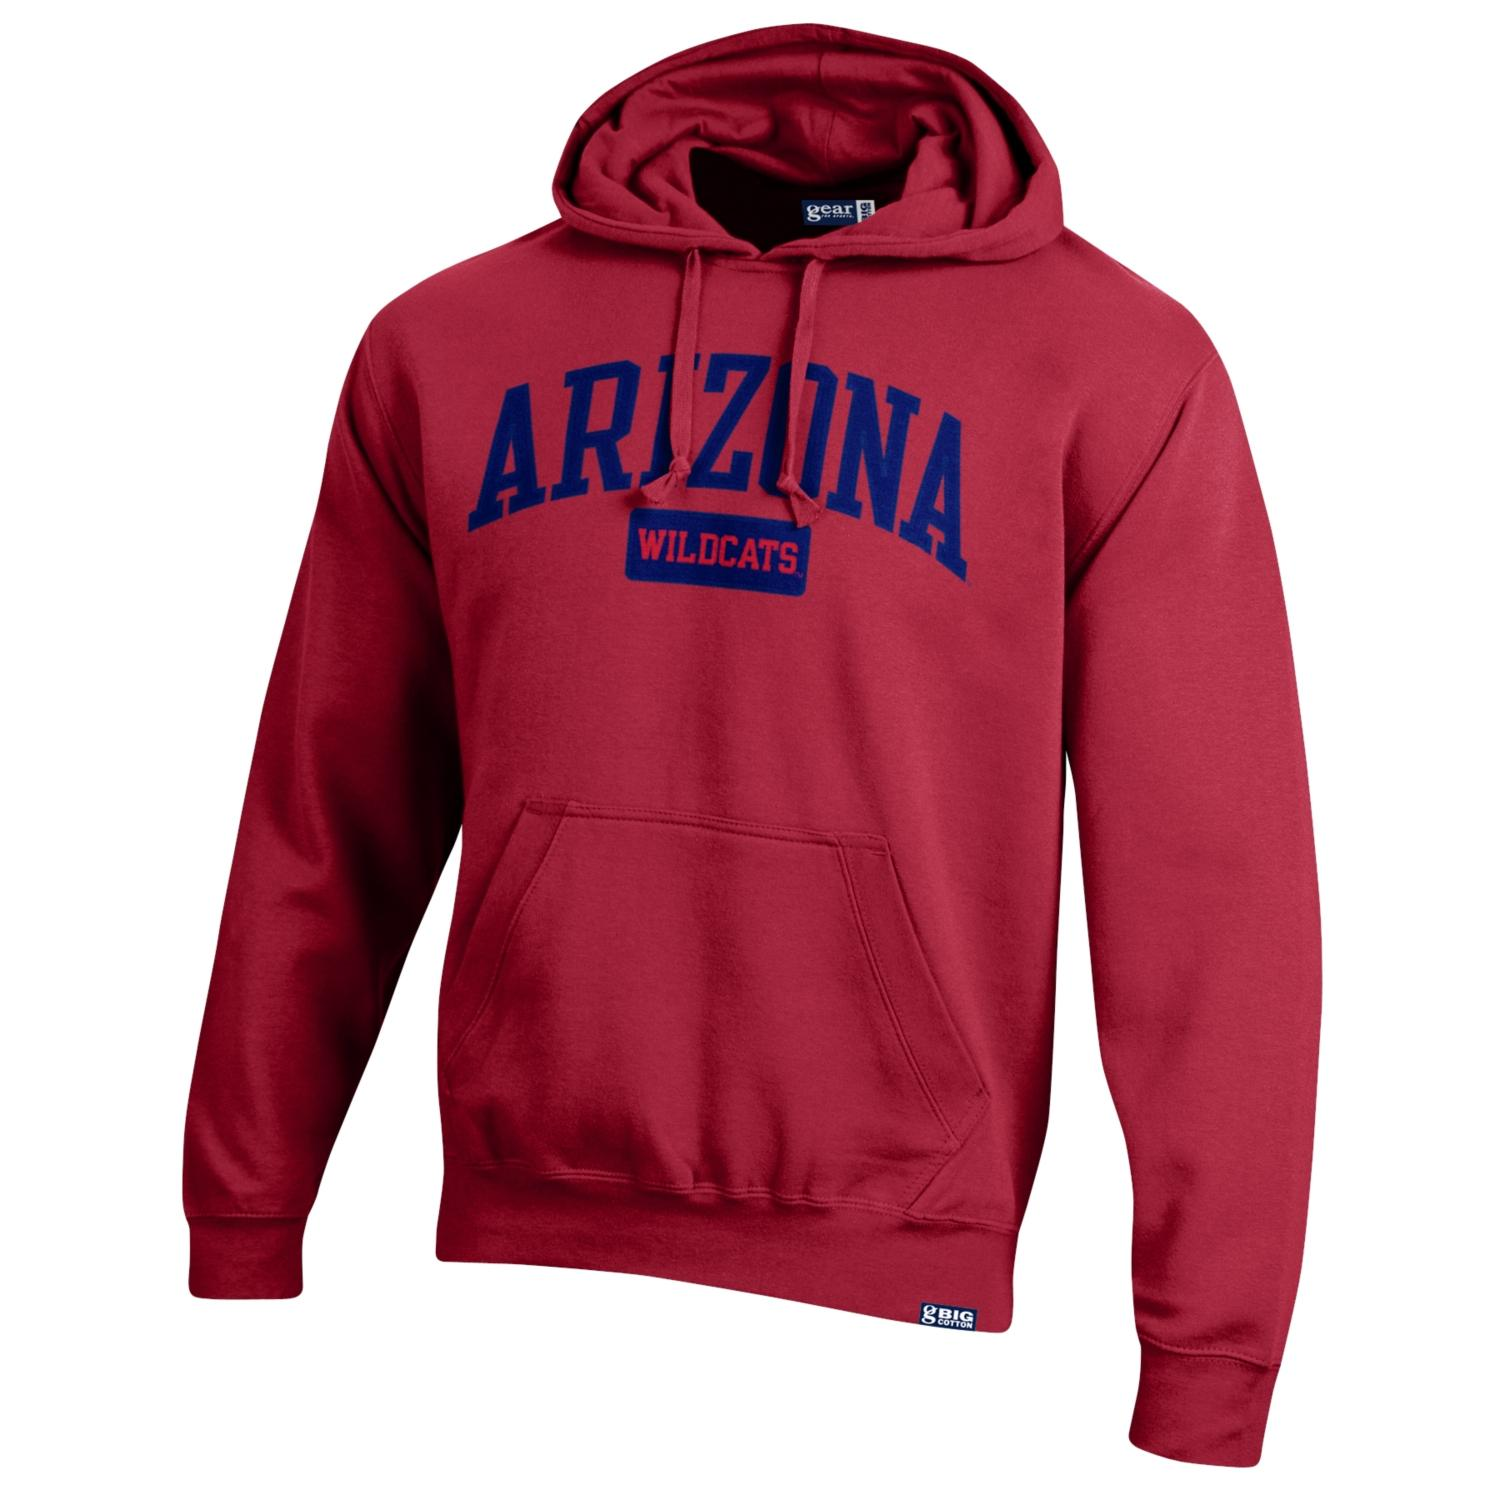 Cover Image For Gear: Arizona Wildcats Big Cotton Hoodie-Red